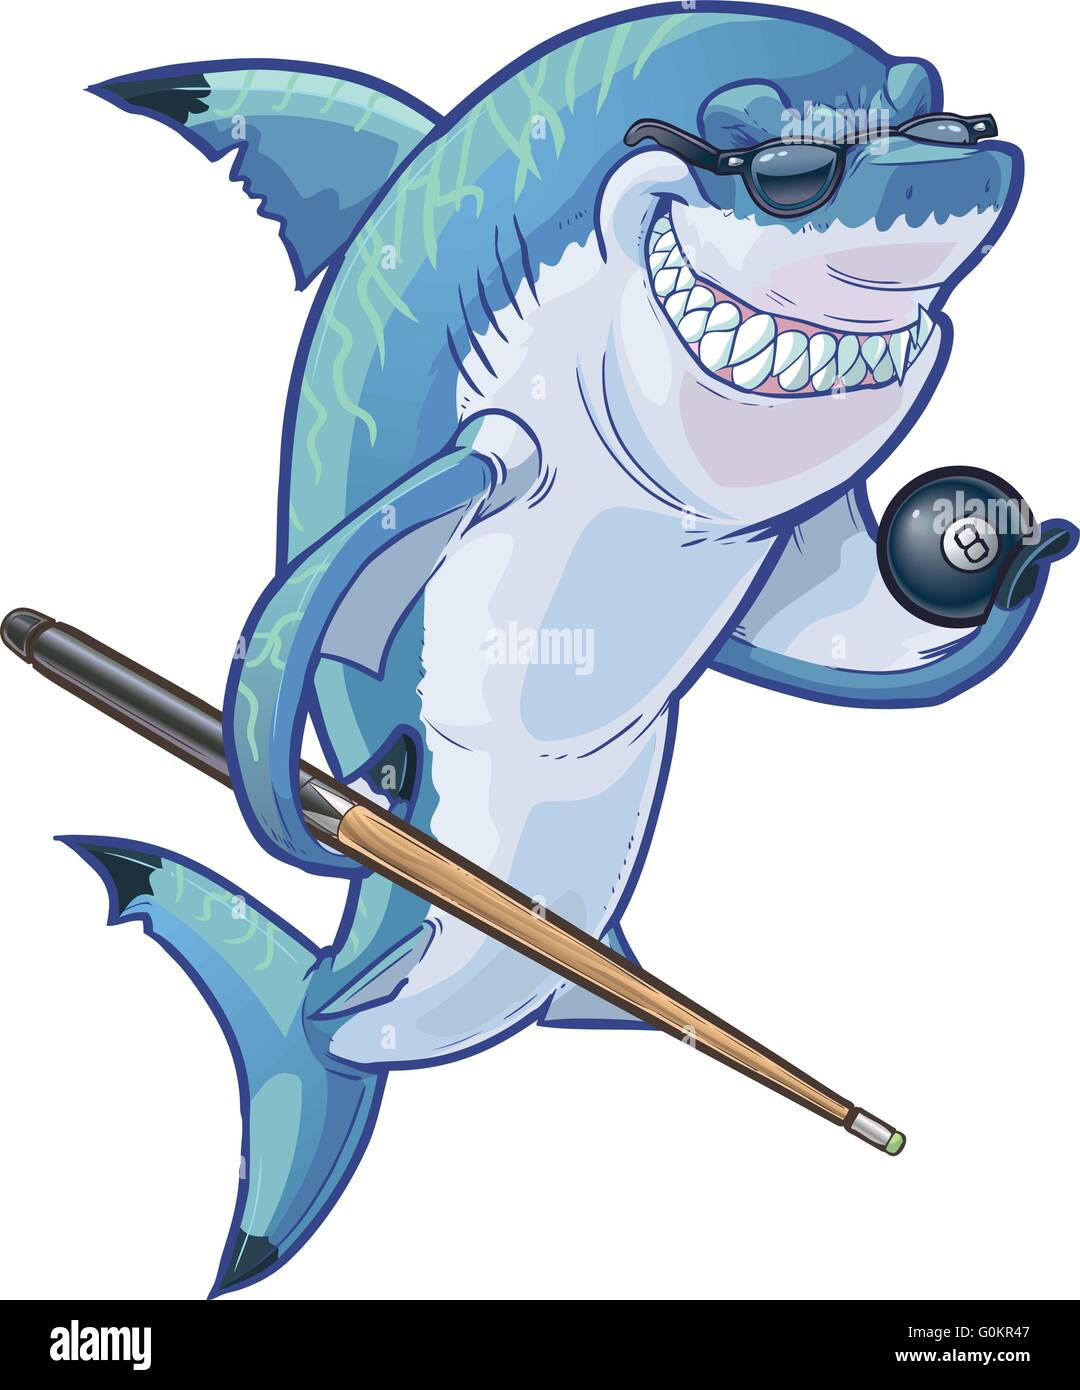 Vector cartoon clip art illustration of a tough mean smiling shark mascot wearing sunglasses and holding eight ball - Stock Vector